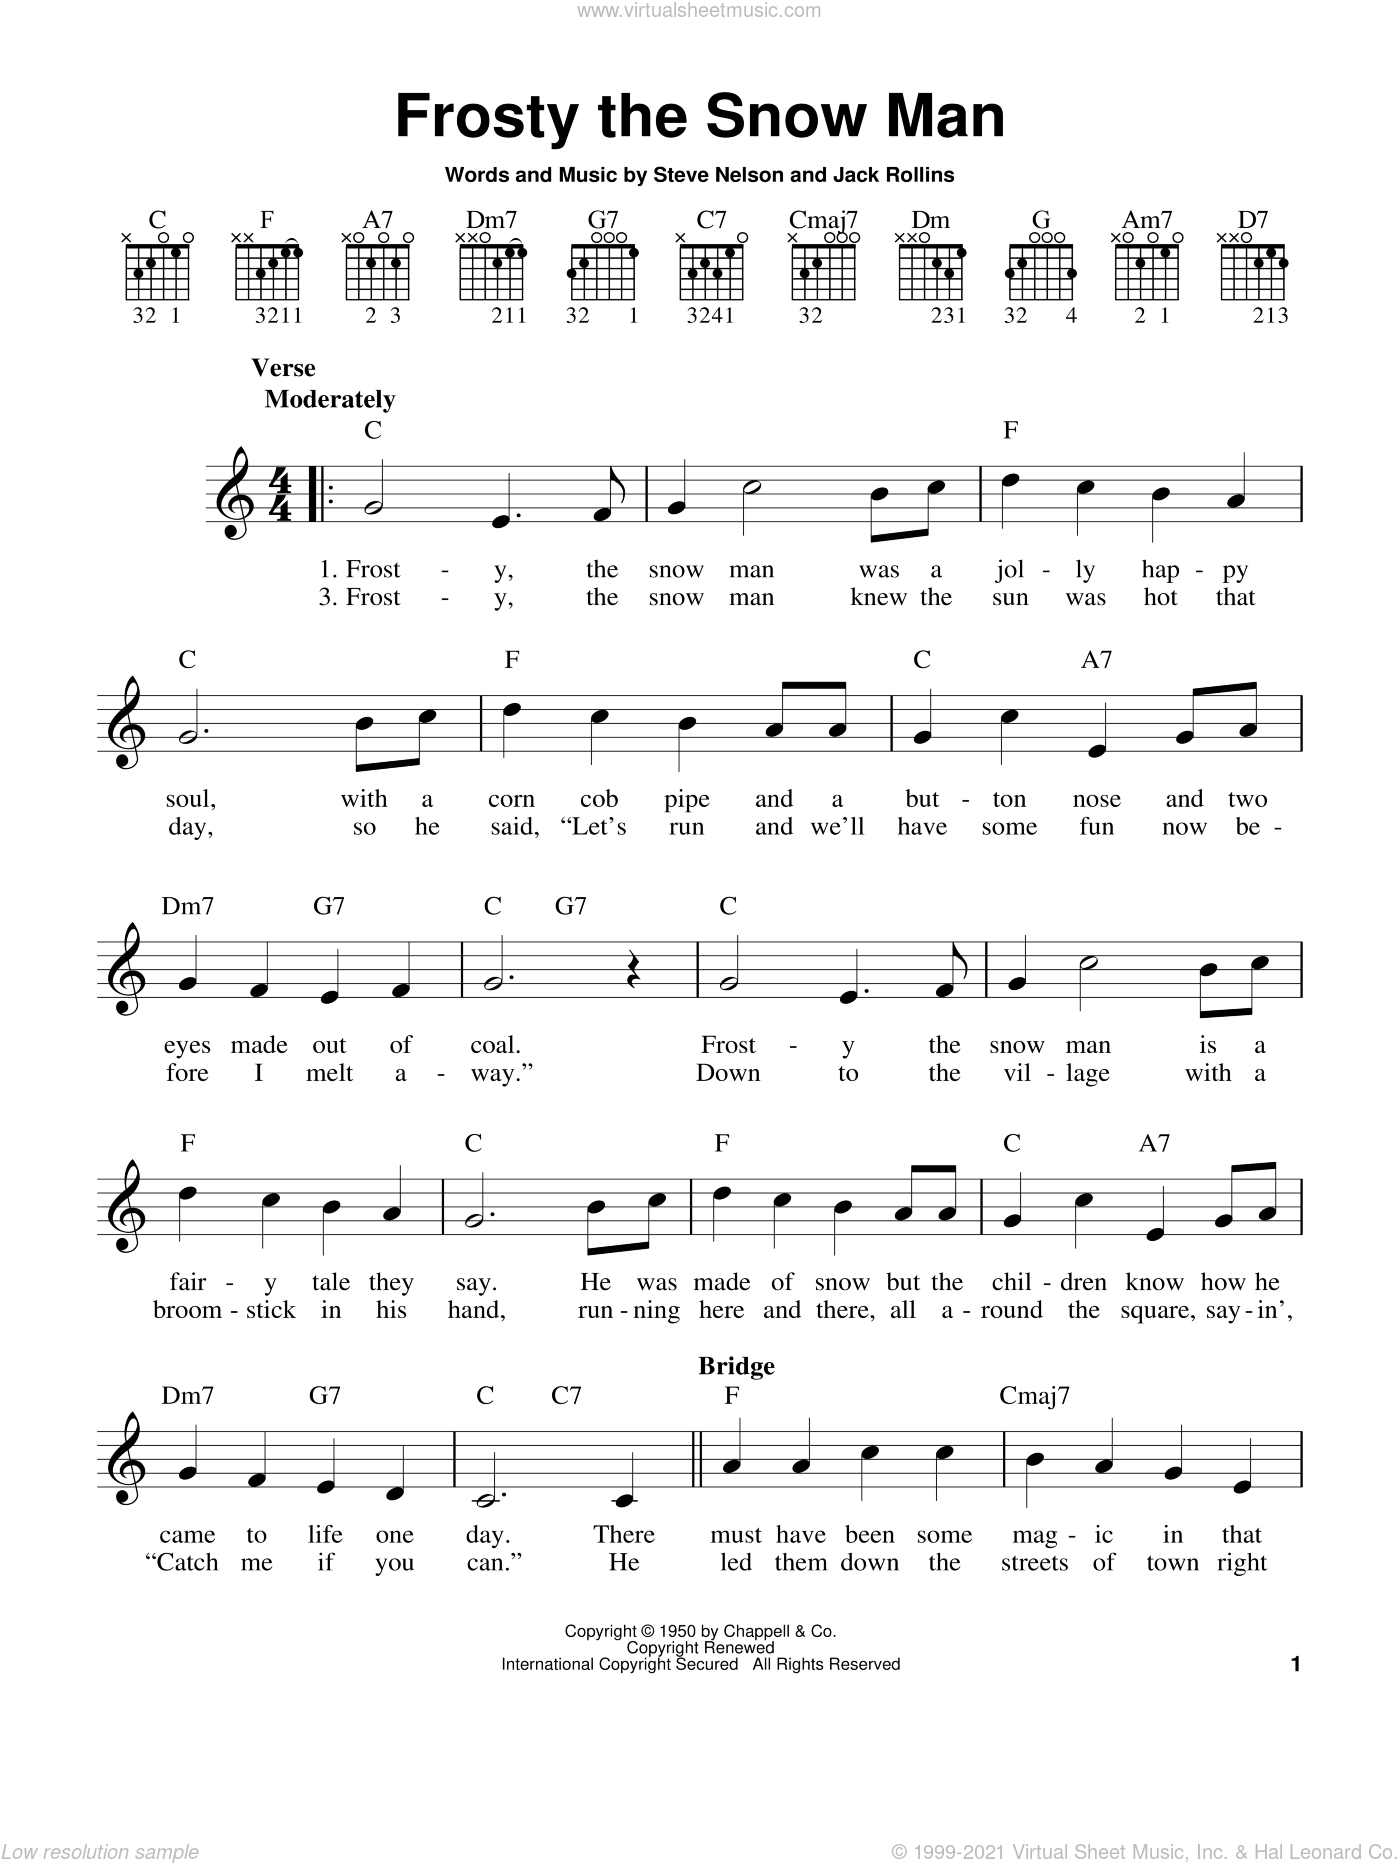 Frosty The Snow Man sheet music for guitar solo (chords) by Gene Autry, Jack Rollins and Steve Nelson